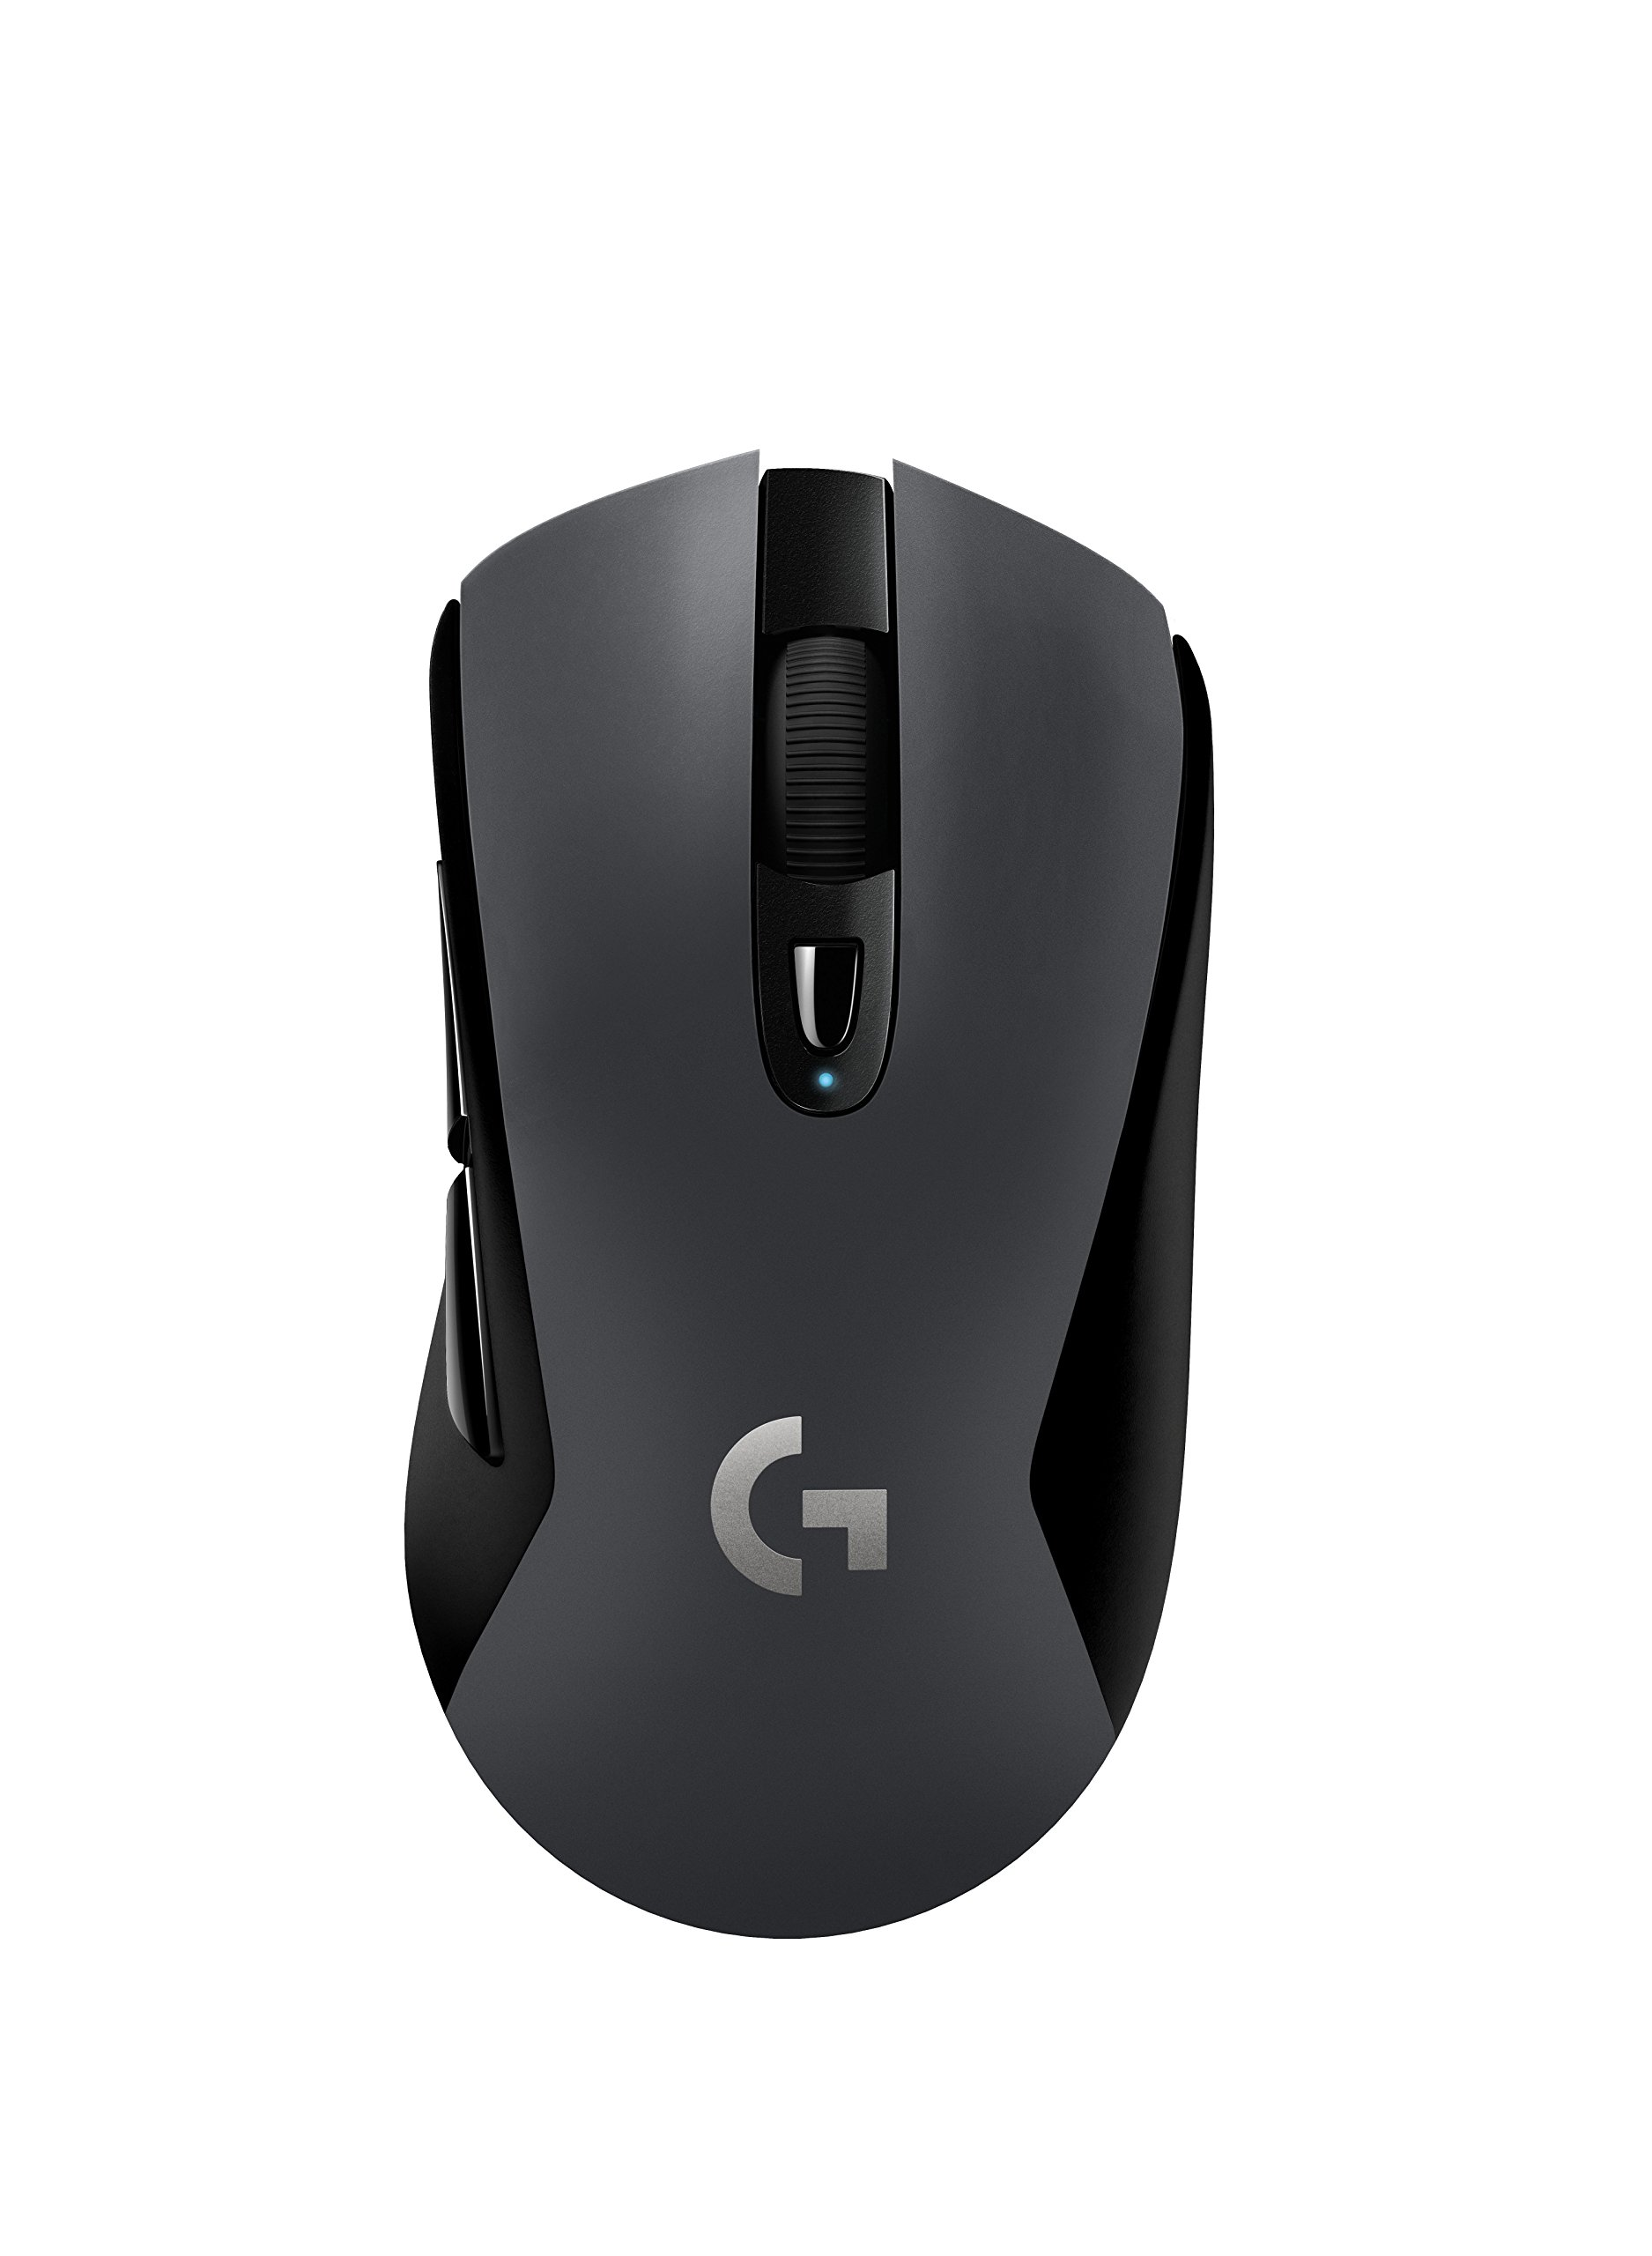 Logitech G603 LIGHTSPEED Wireless Gaming Mouse, Ergonomically Designed, 12,000 DPI by Logitech